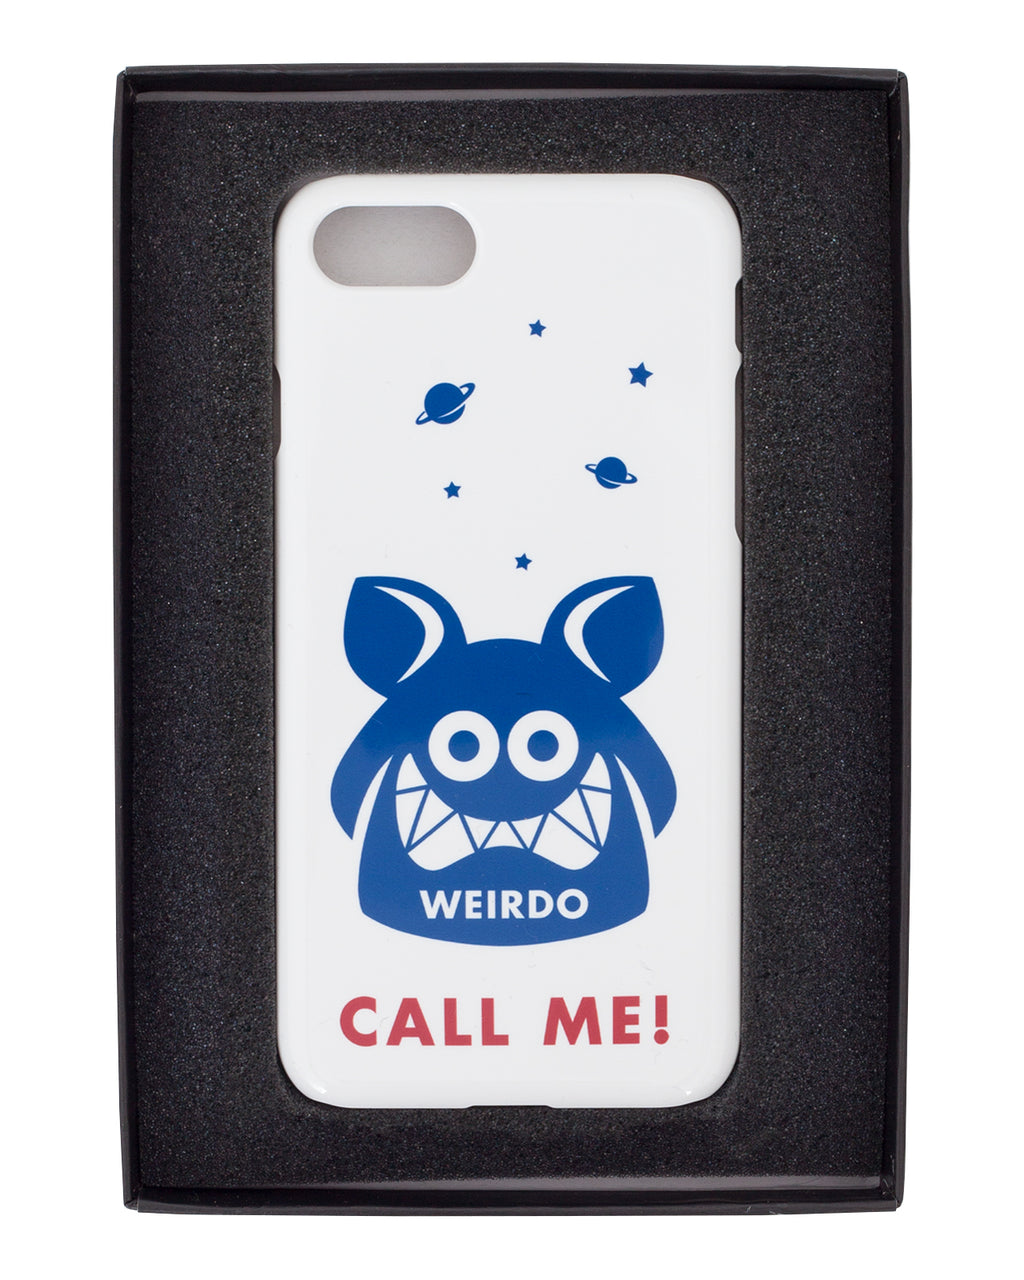 Weirdo Iphone 8 Case, Call Me